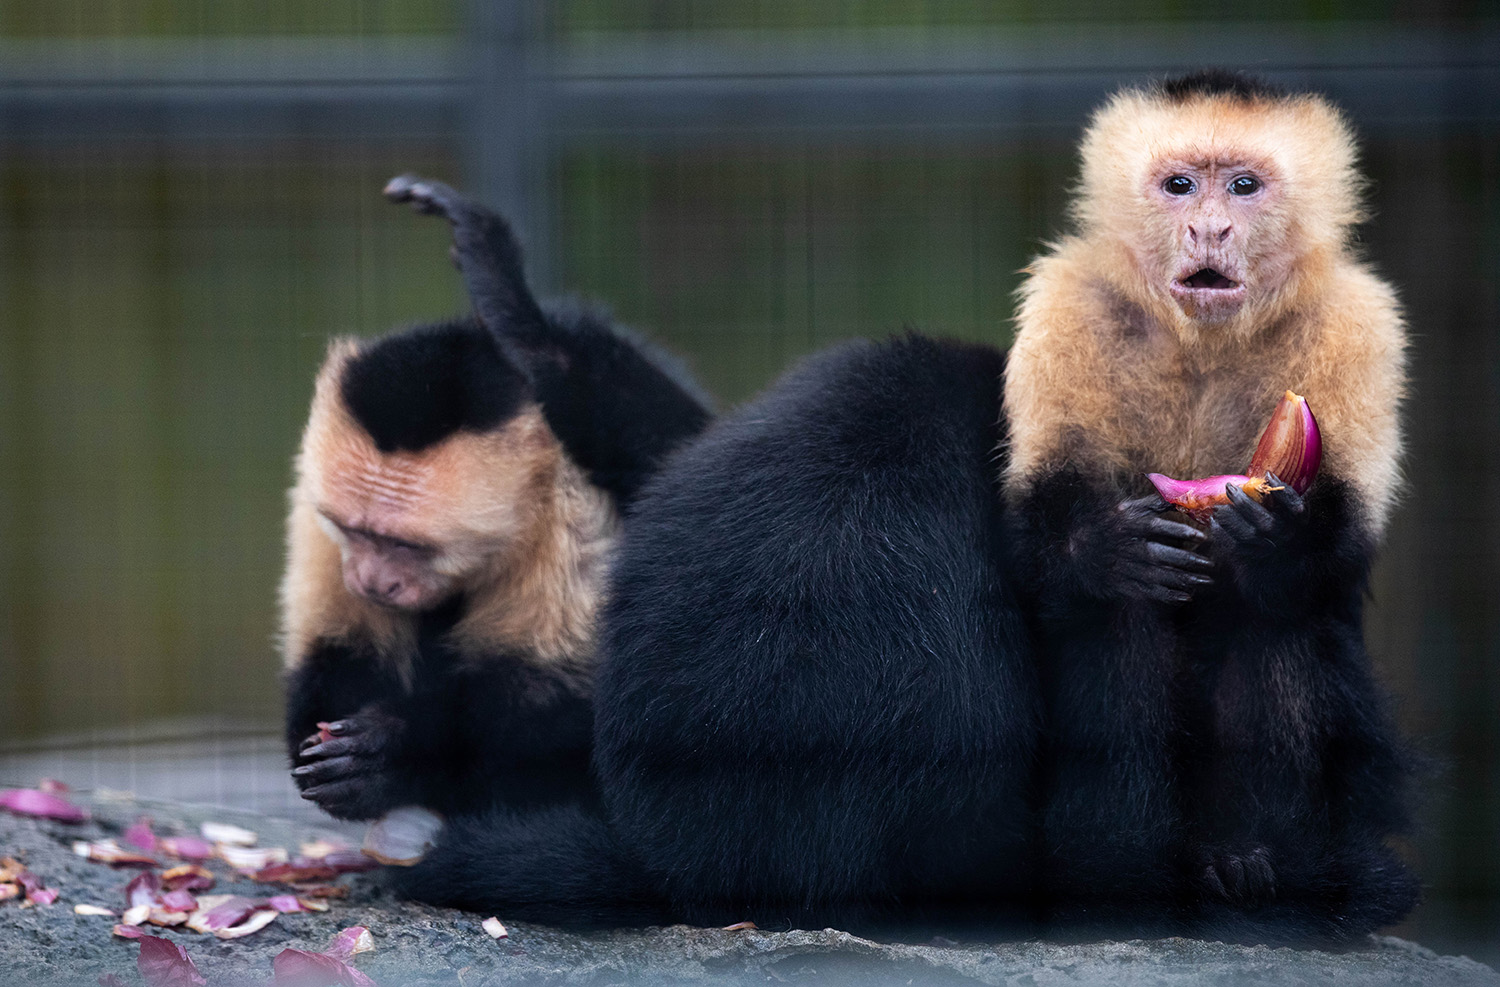 White-Throated Capuchins eat red onions and spread the scent over themselves at Santa Fe College Teaching Zoo prior to their reopening seen on Sept. 28, 2020 (Matt Stamey/Santa Fe College ) ***Subjects Have Releases***